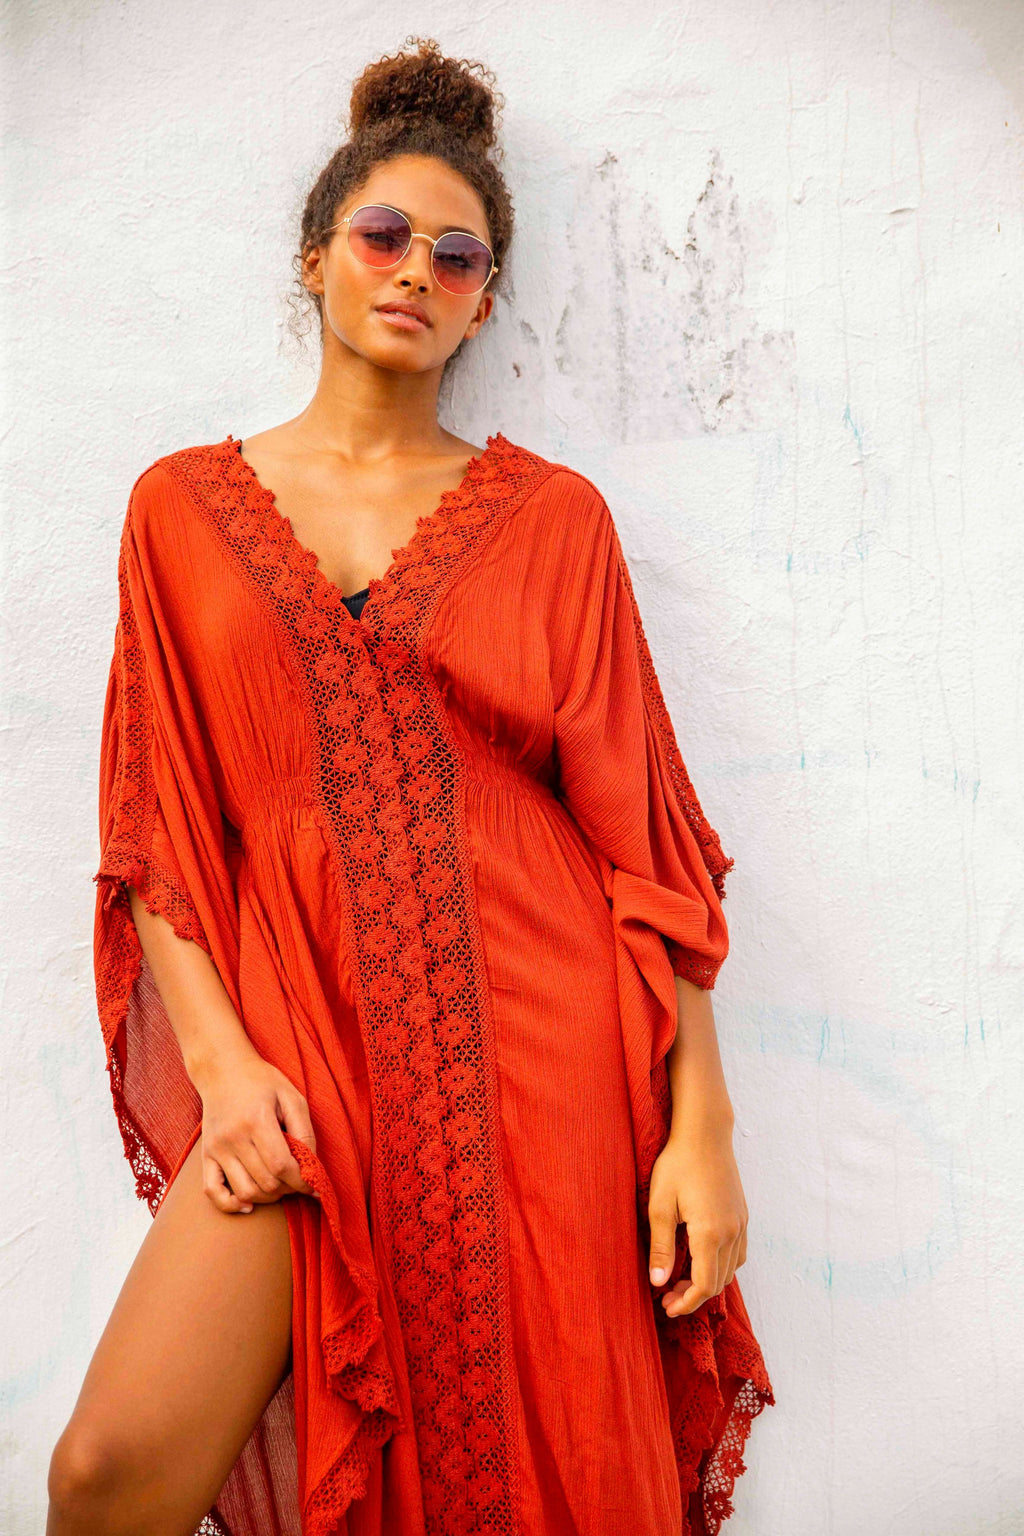 Beautiful black model wearing long terra cotta coloured bikini and swim suit coverup. Coverup has lace trim down center and on hem.